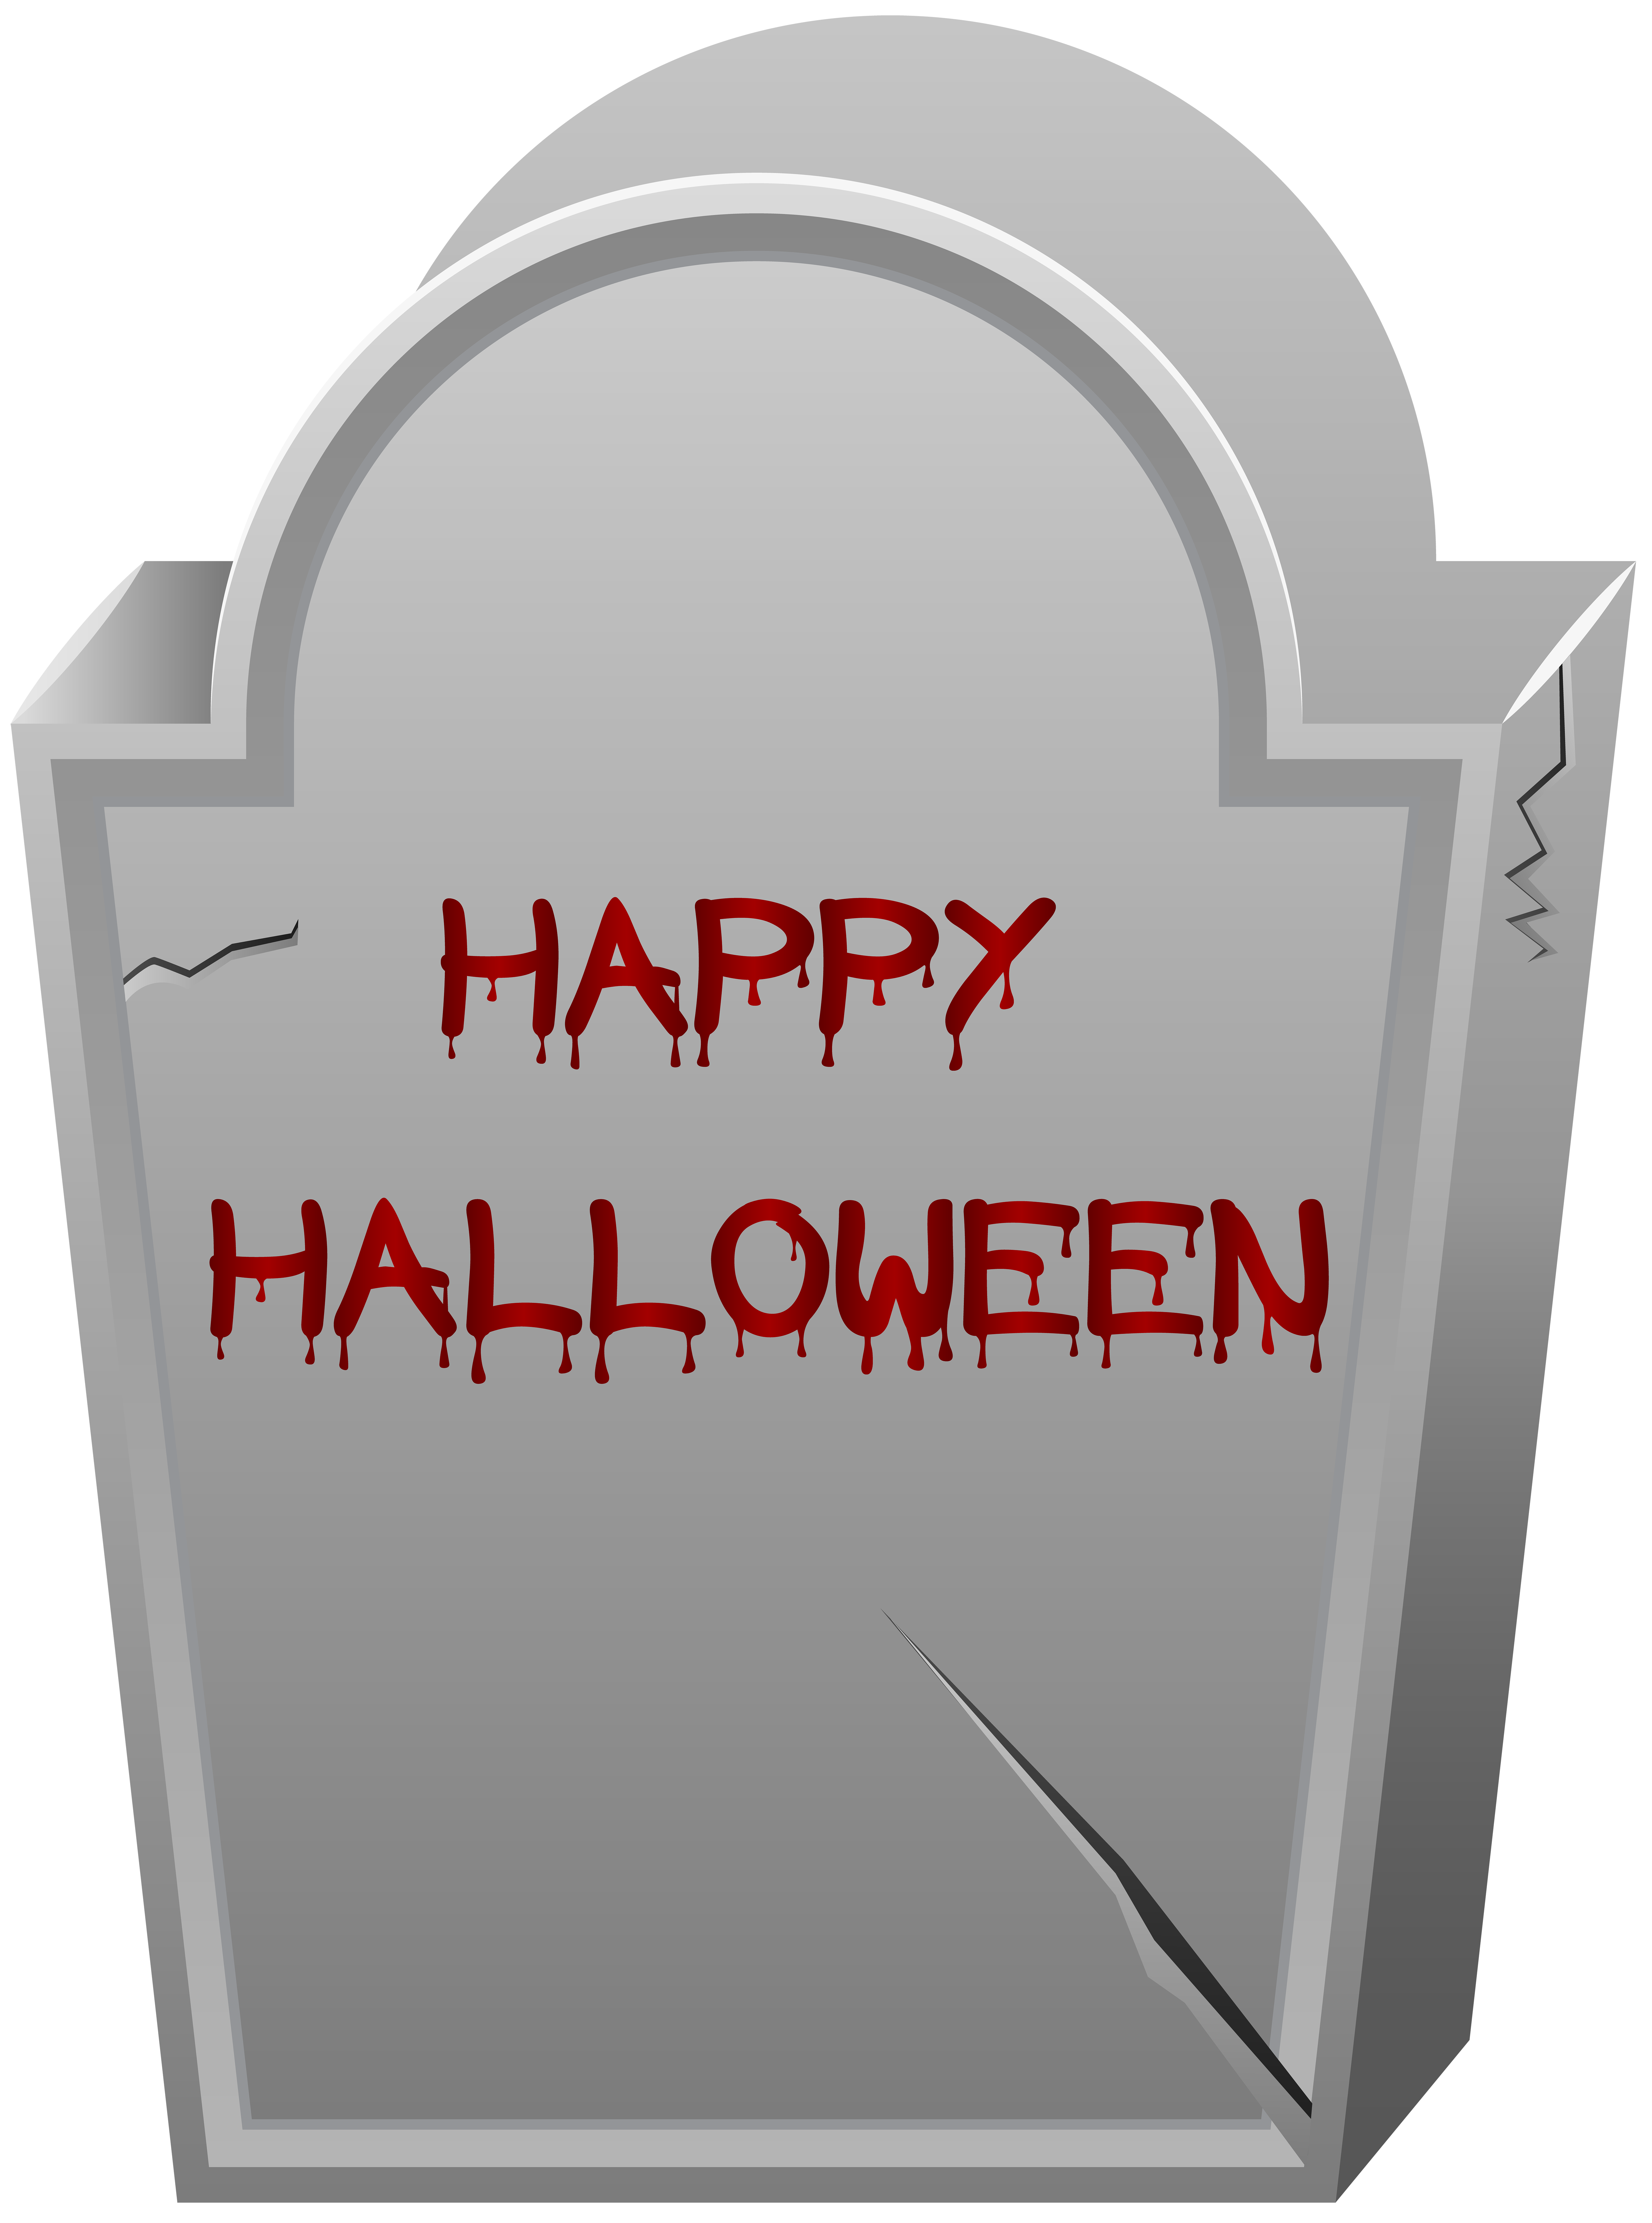 Halloween tombstones sayings clipart clip art freeuse stock Happy Halloween Tombstone PNG Clip Art Image | Gallery Yopriceville ... clip art freeuse stock